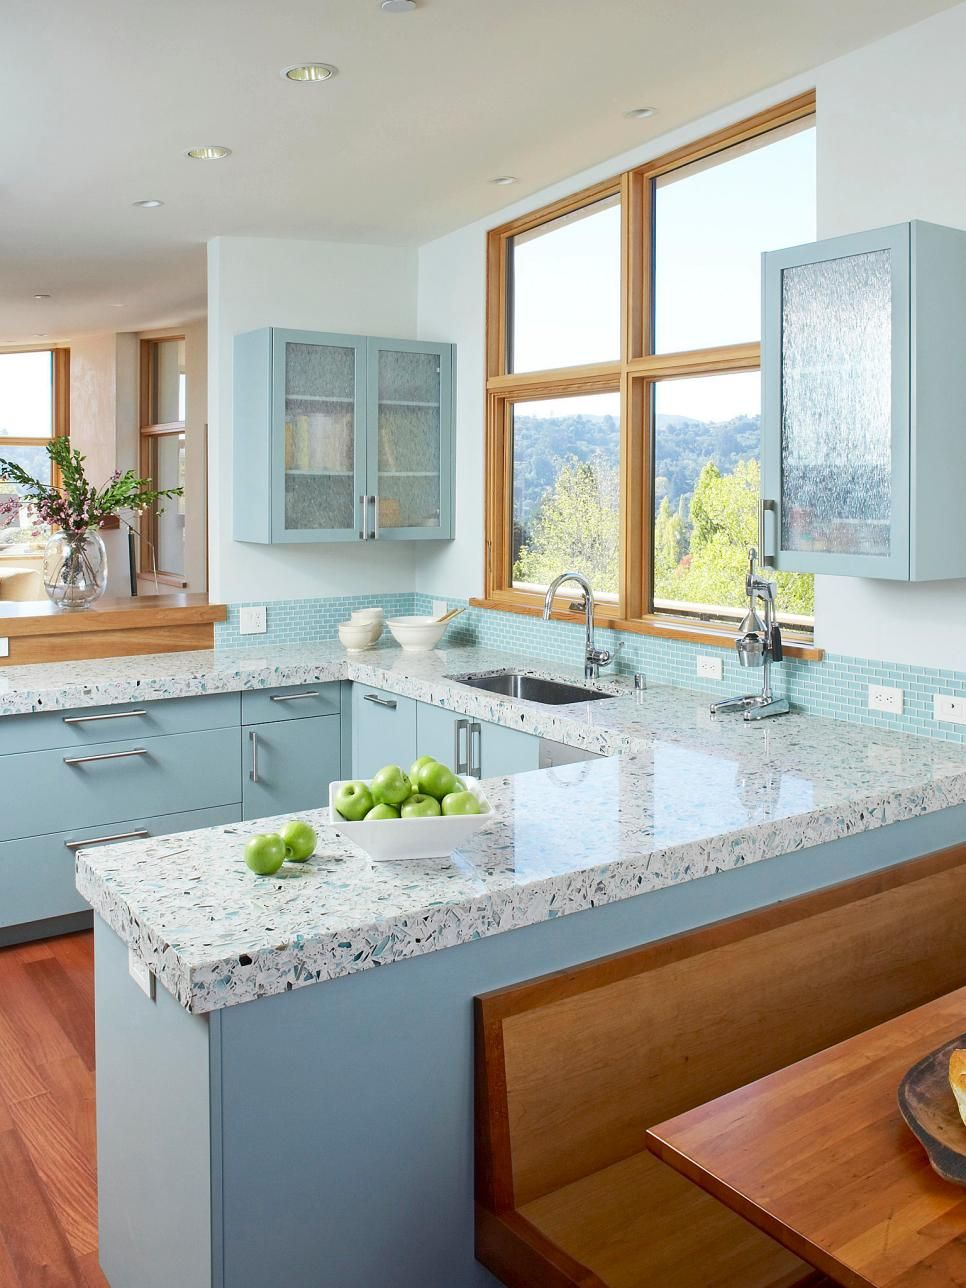 Our 13 Favorite Kitchen Countertop Materials | Recycled countertops ...